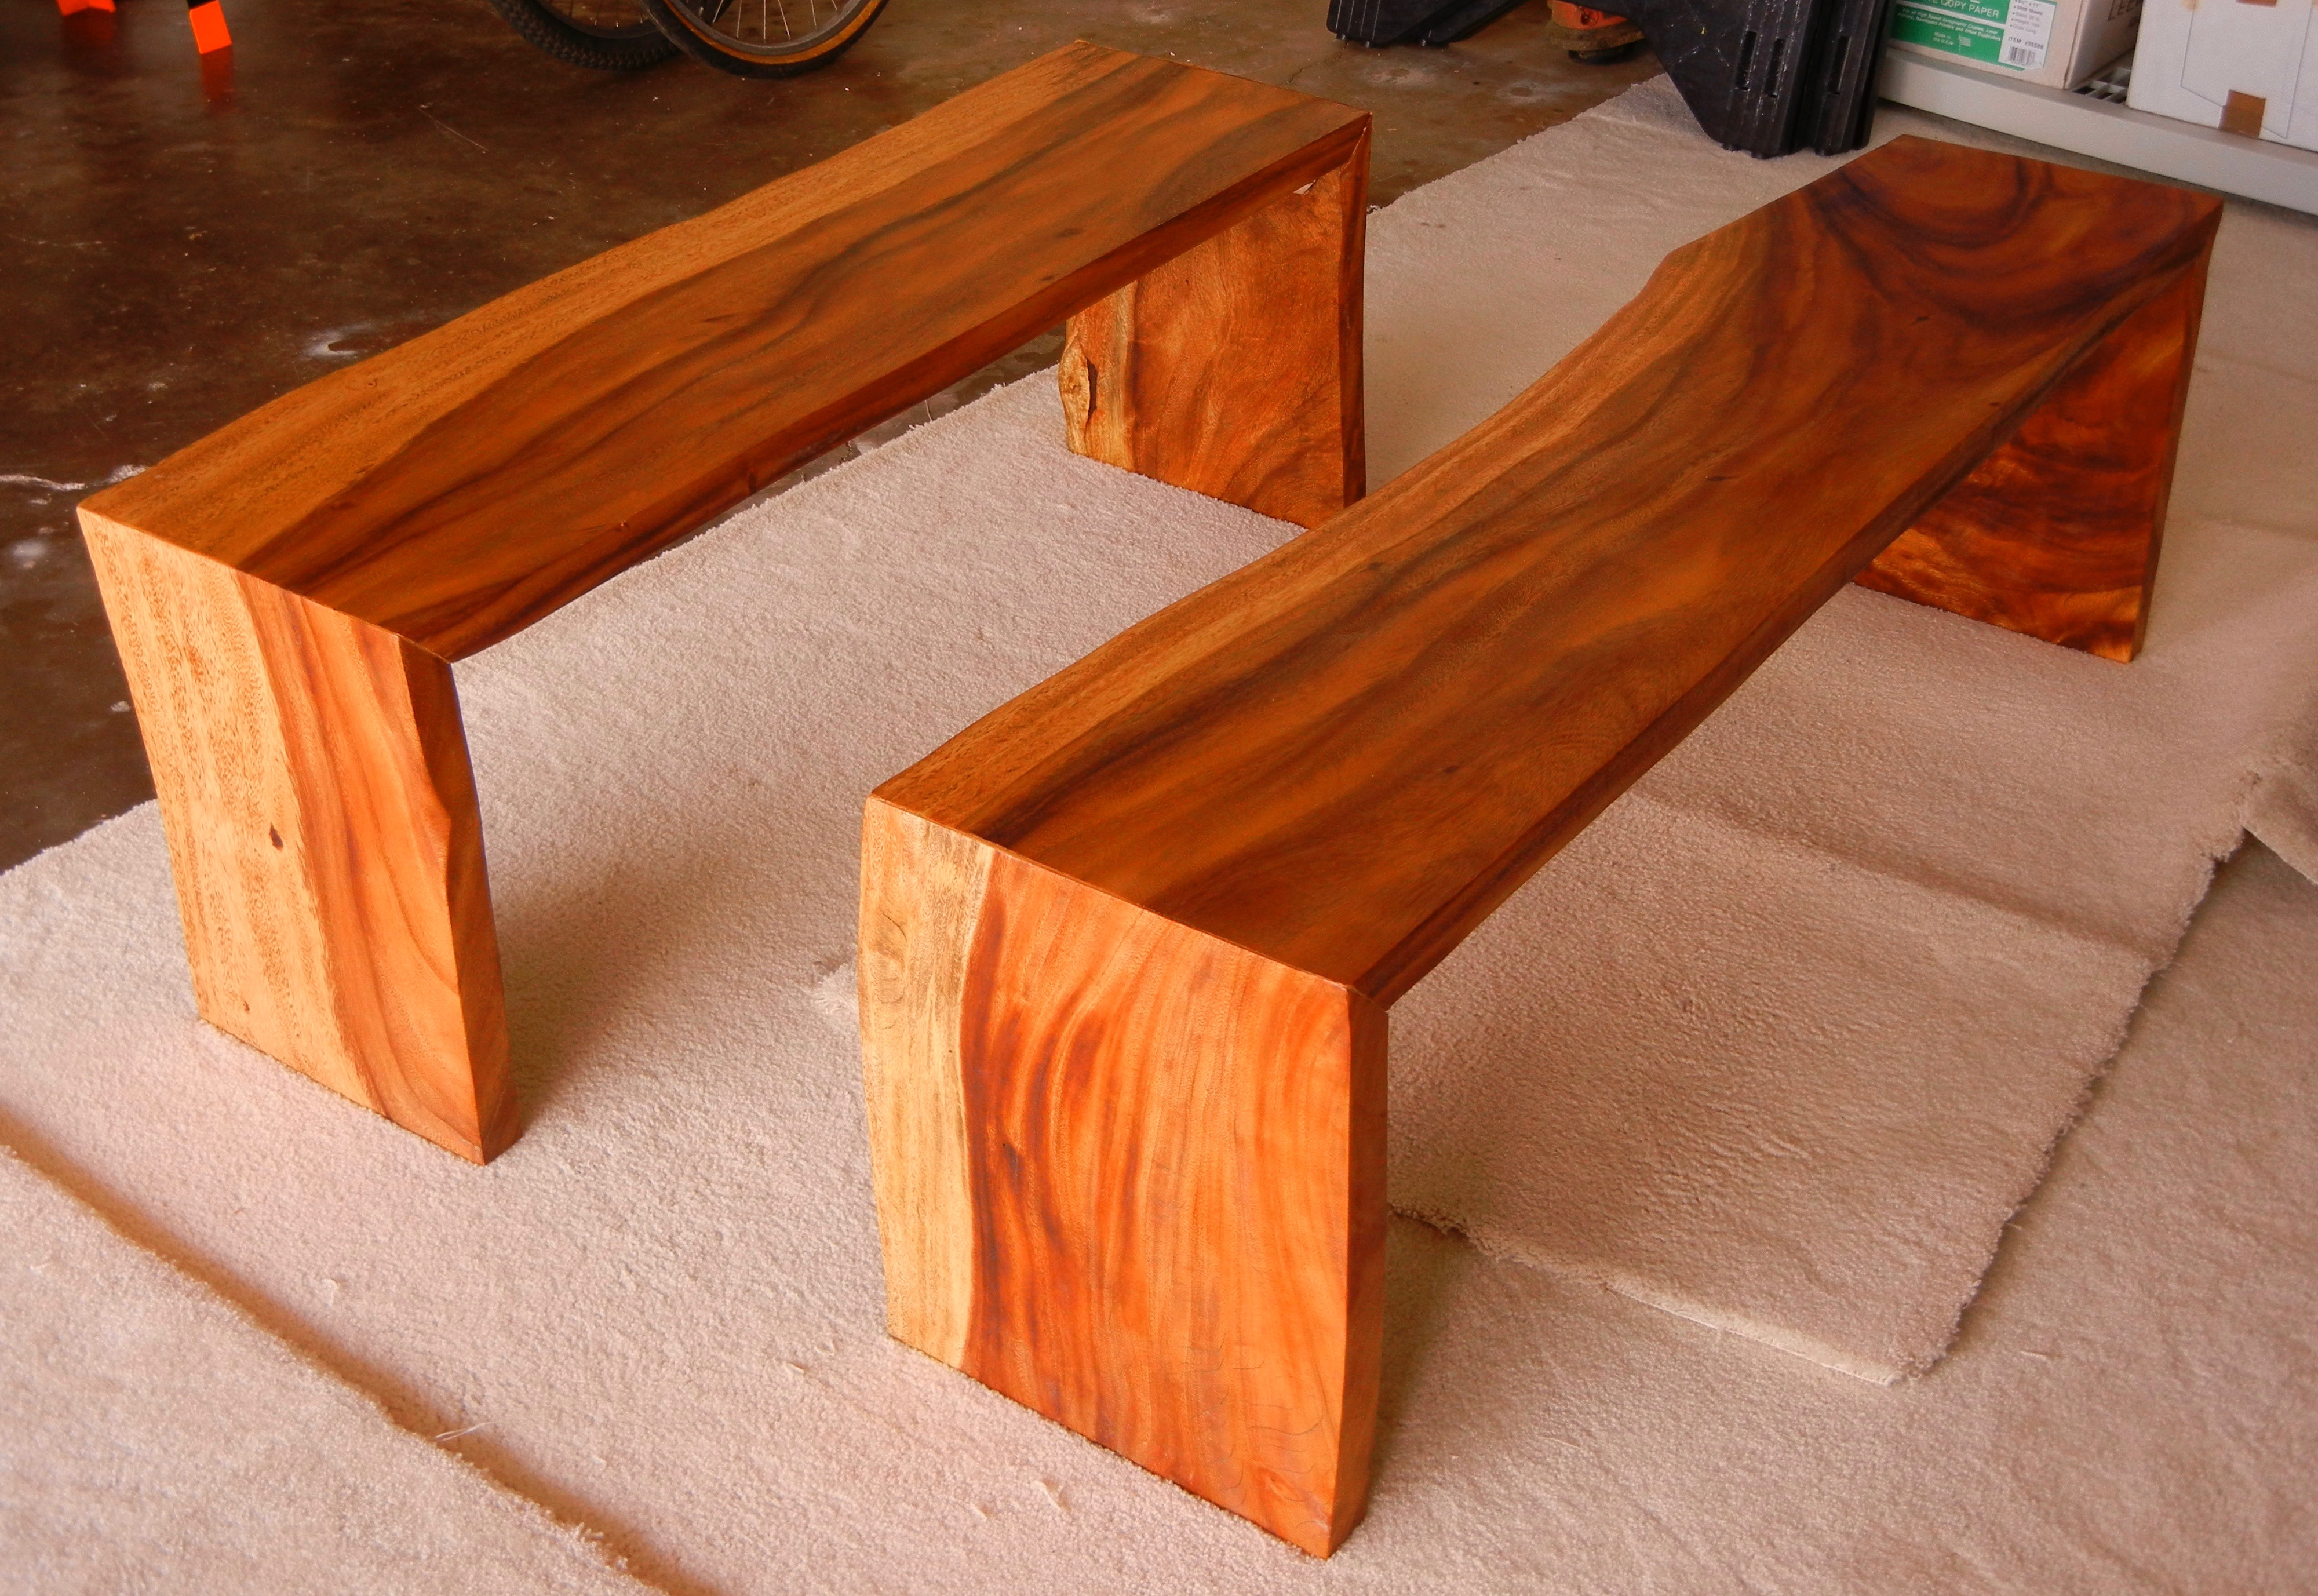 Custom Monkeypod Benches